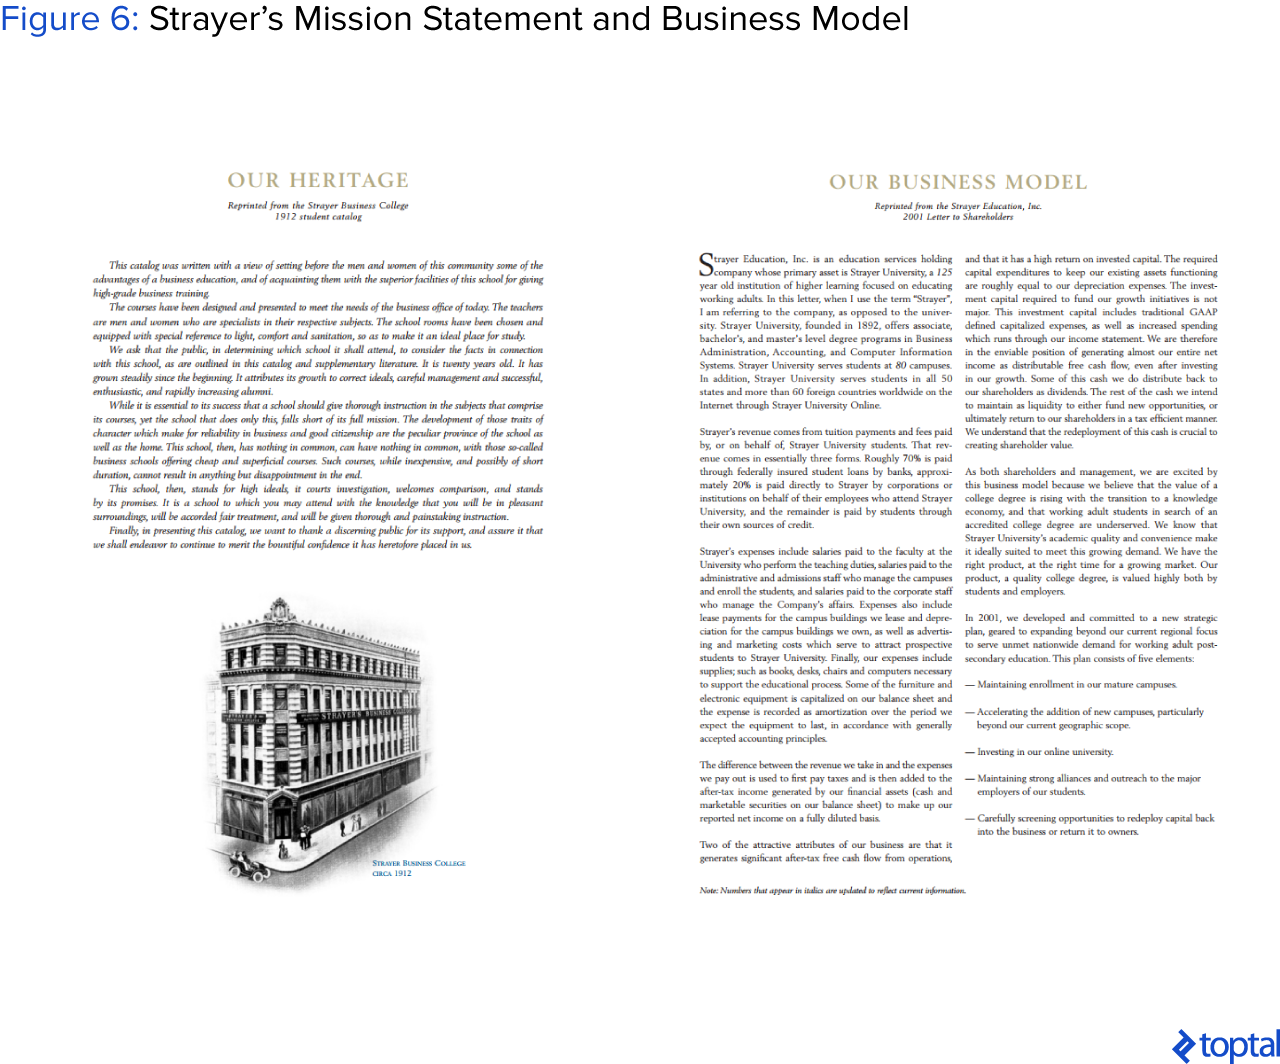 Figure 6: Strayer's Mission Statement and Business Model